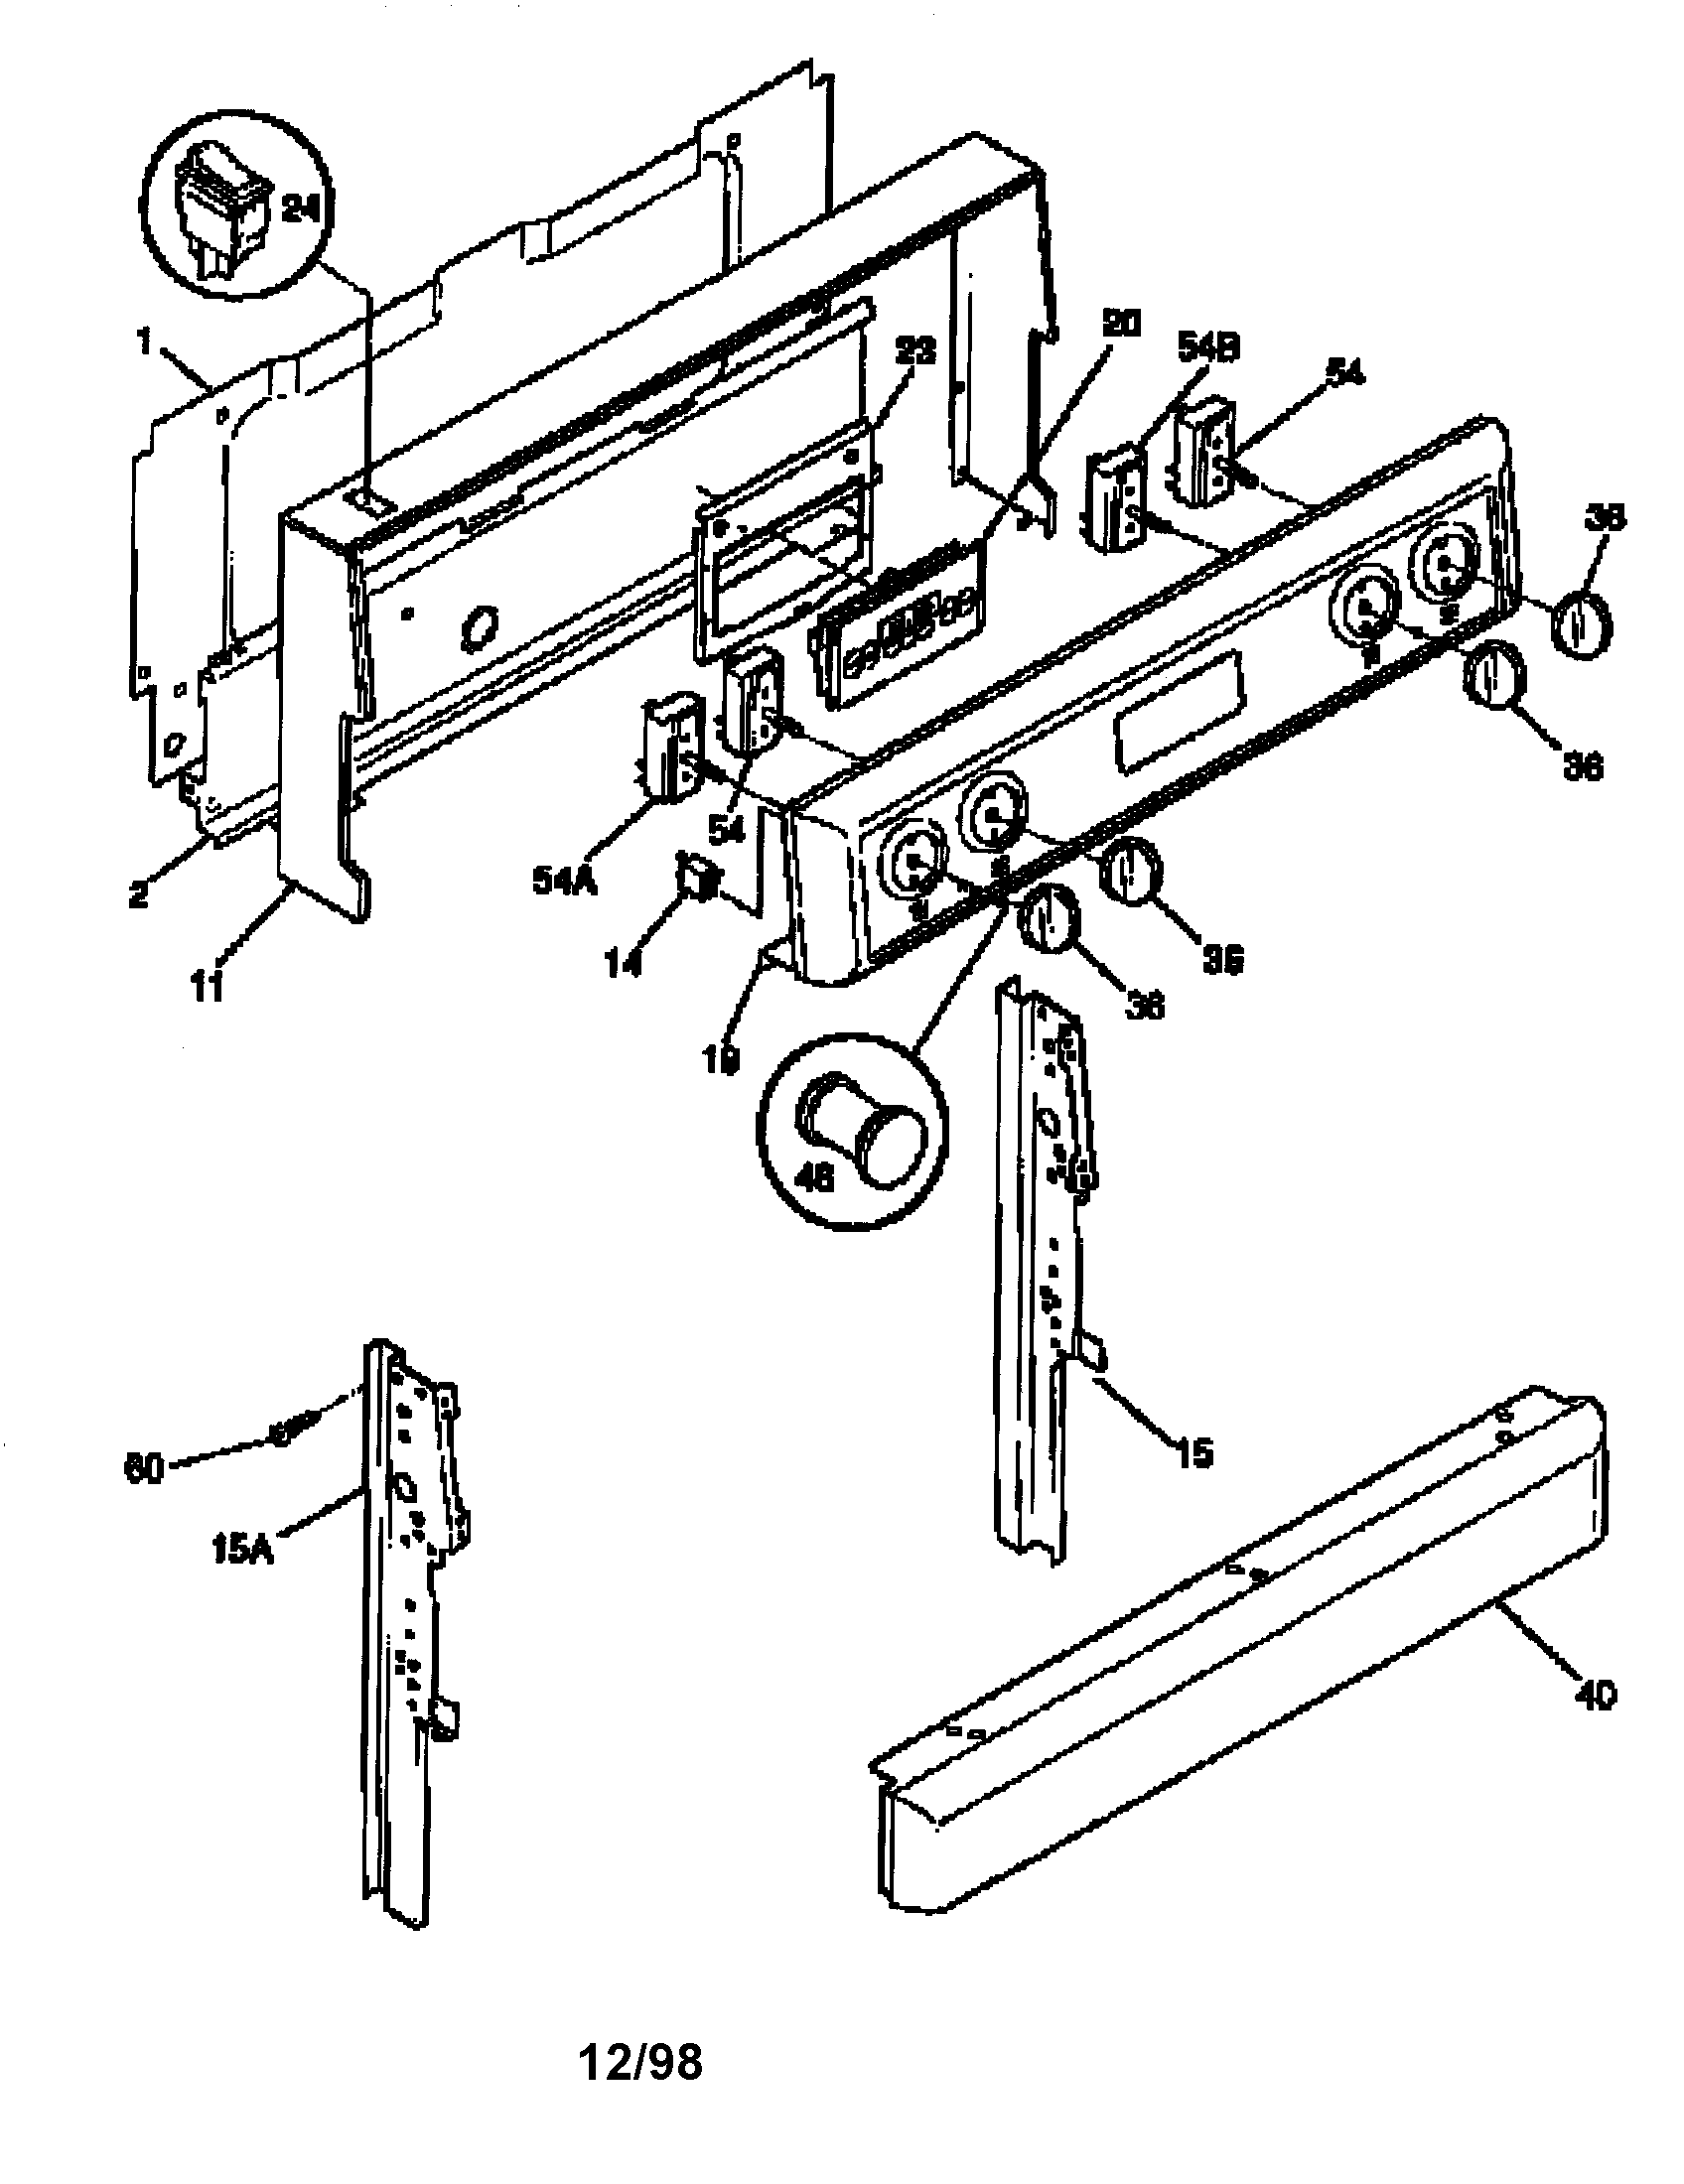 Frigidaire Frigidaire Dishwasher Parts Diagram